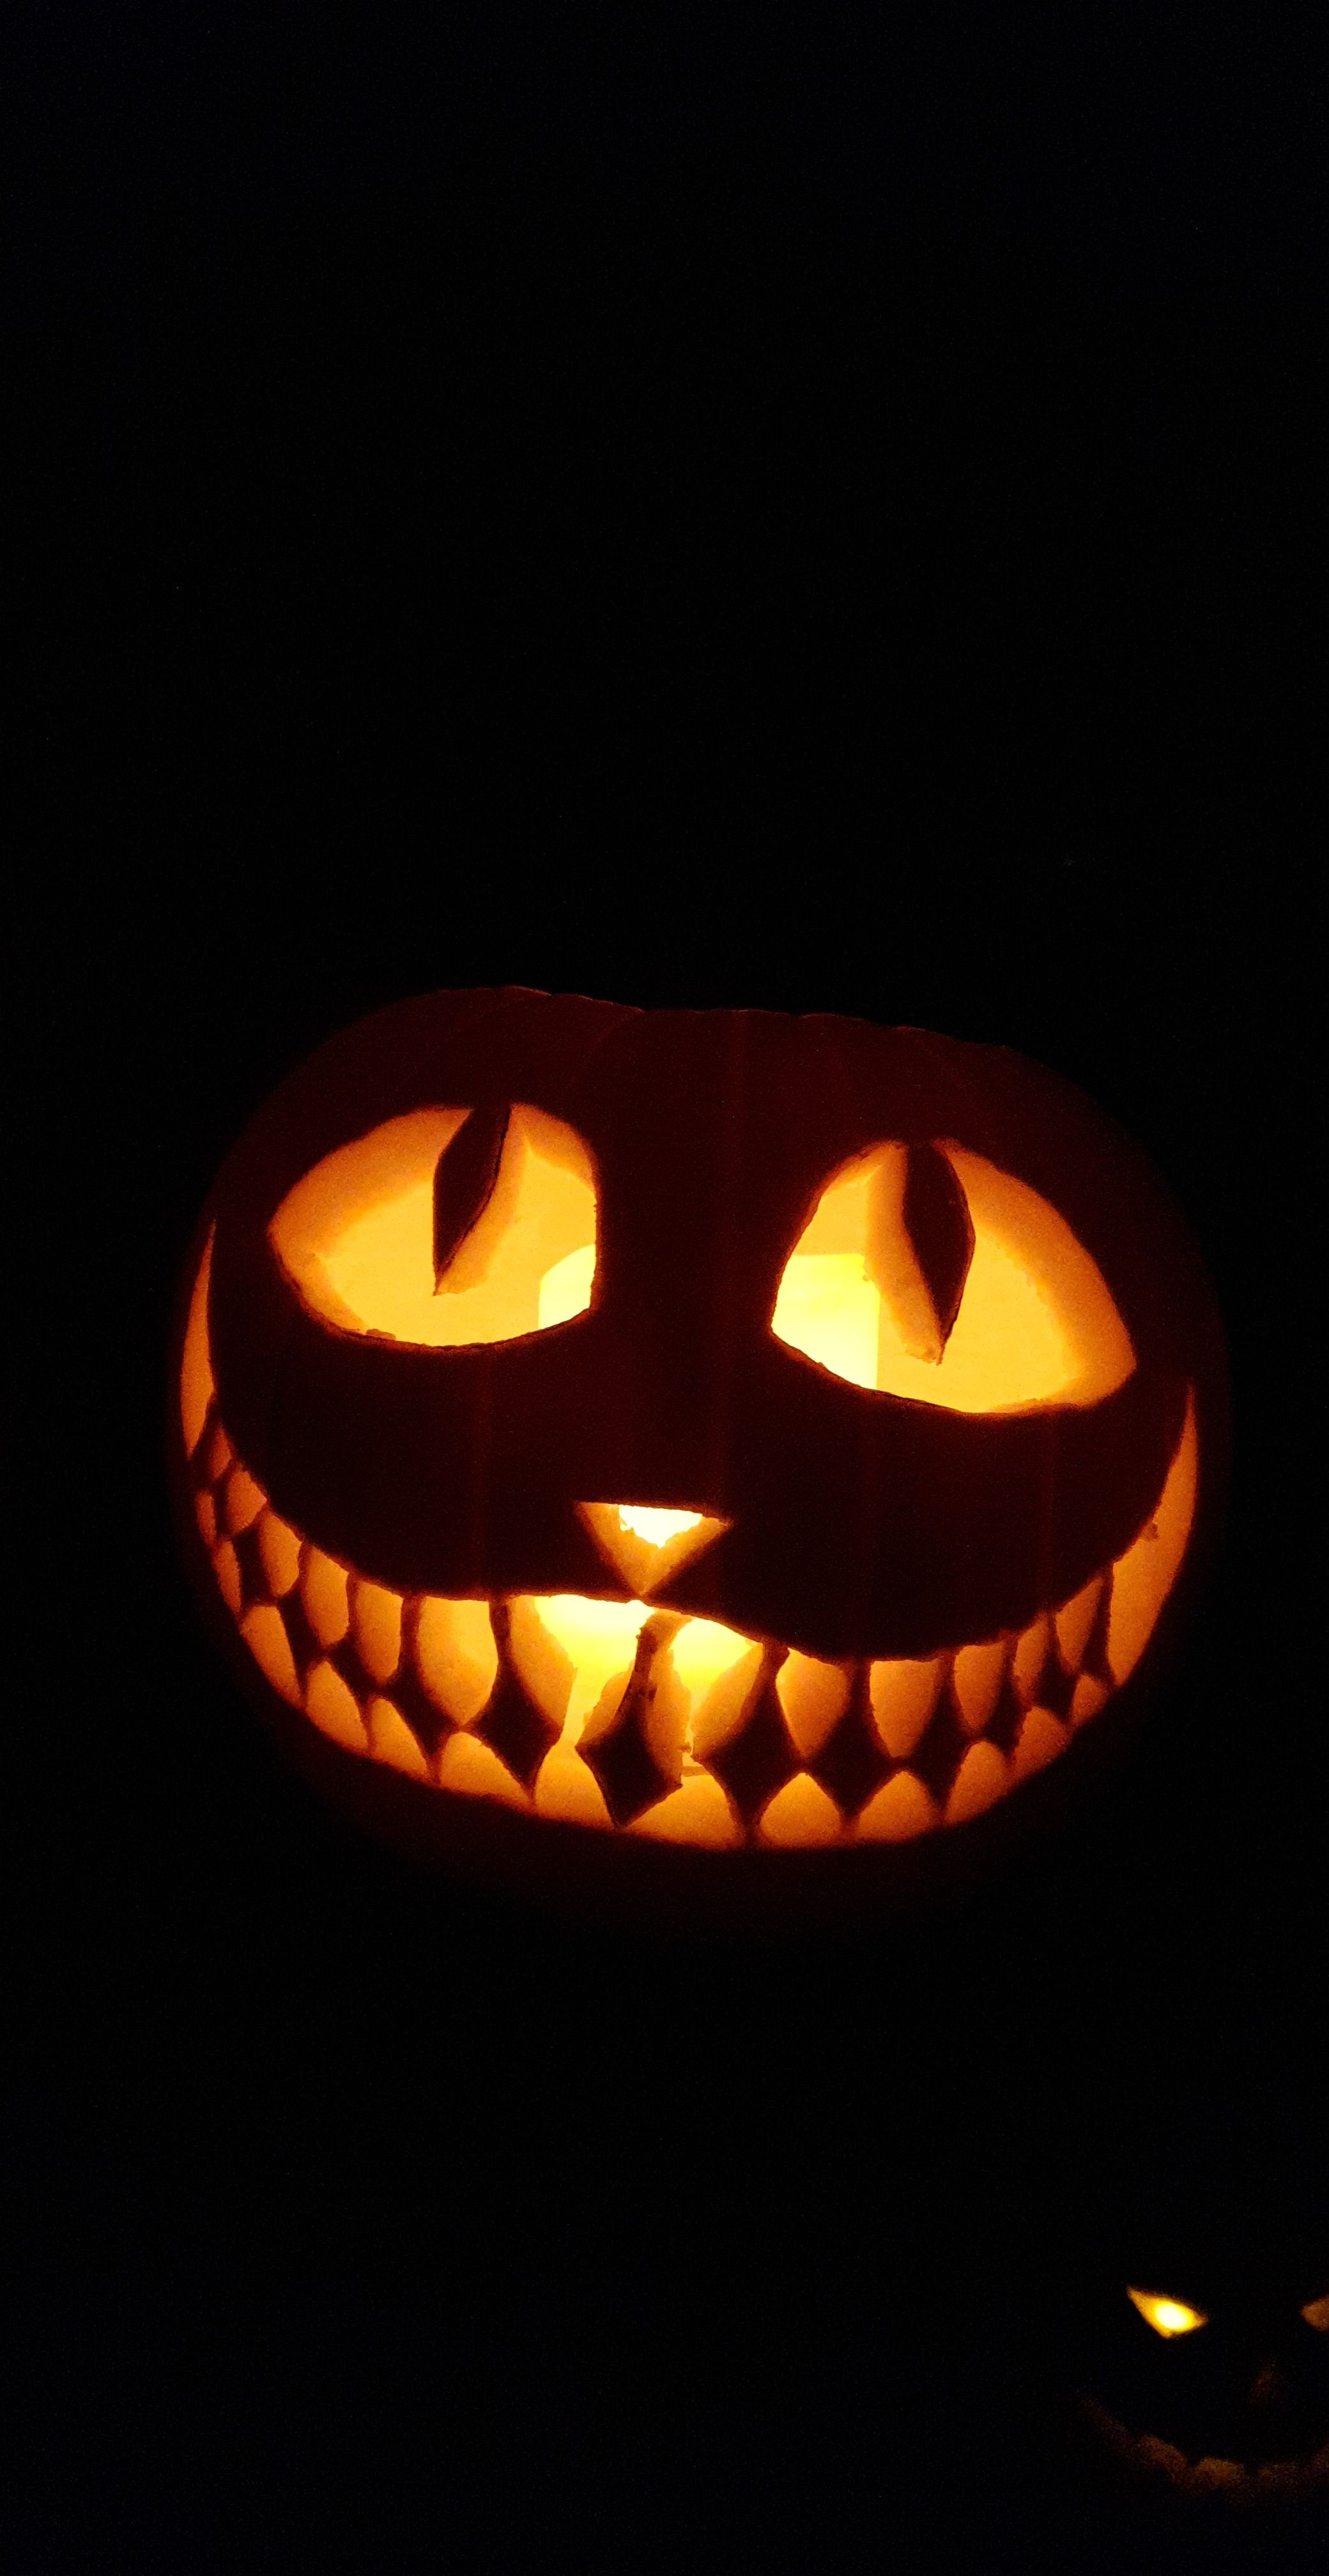 Made a cheshire cat jack o'lantern today 🎃😸